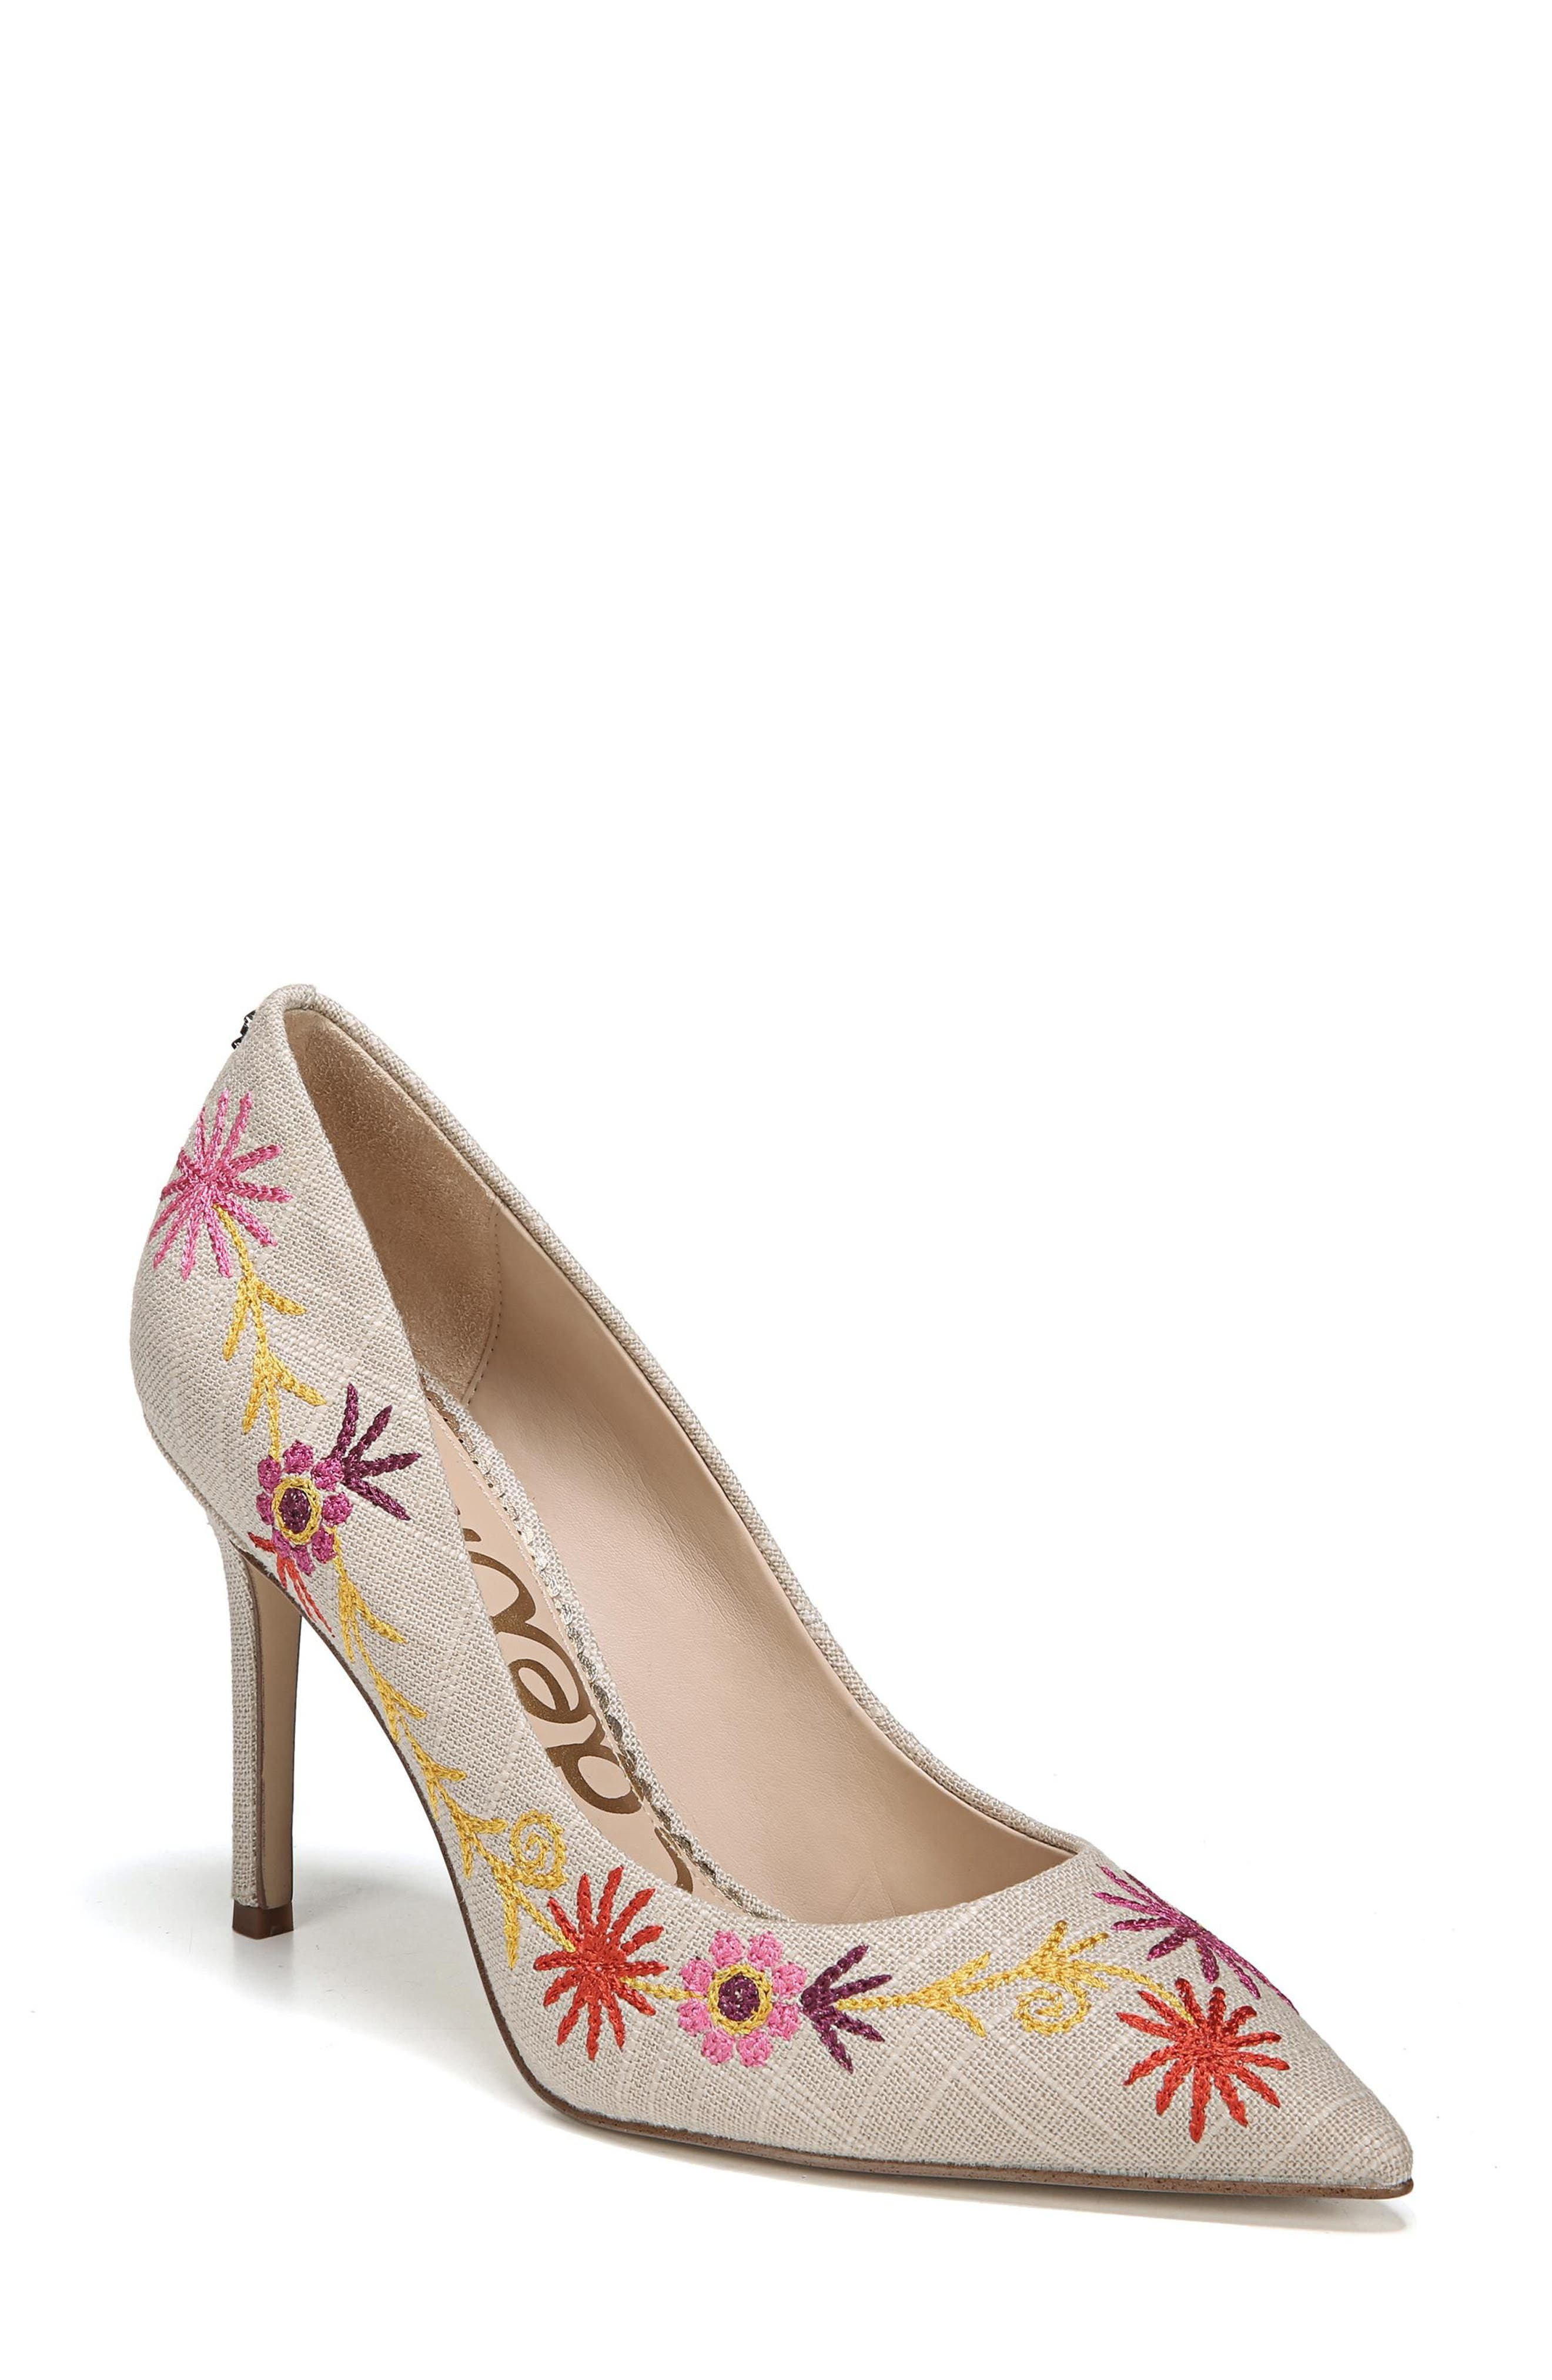 Hazel Pointy Toe Pump,                             Main thumbnail 1, color,                             Yellow Embroidery Suede